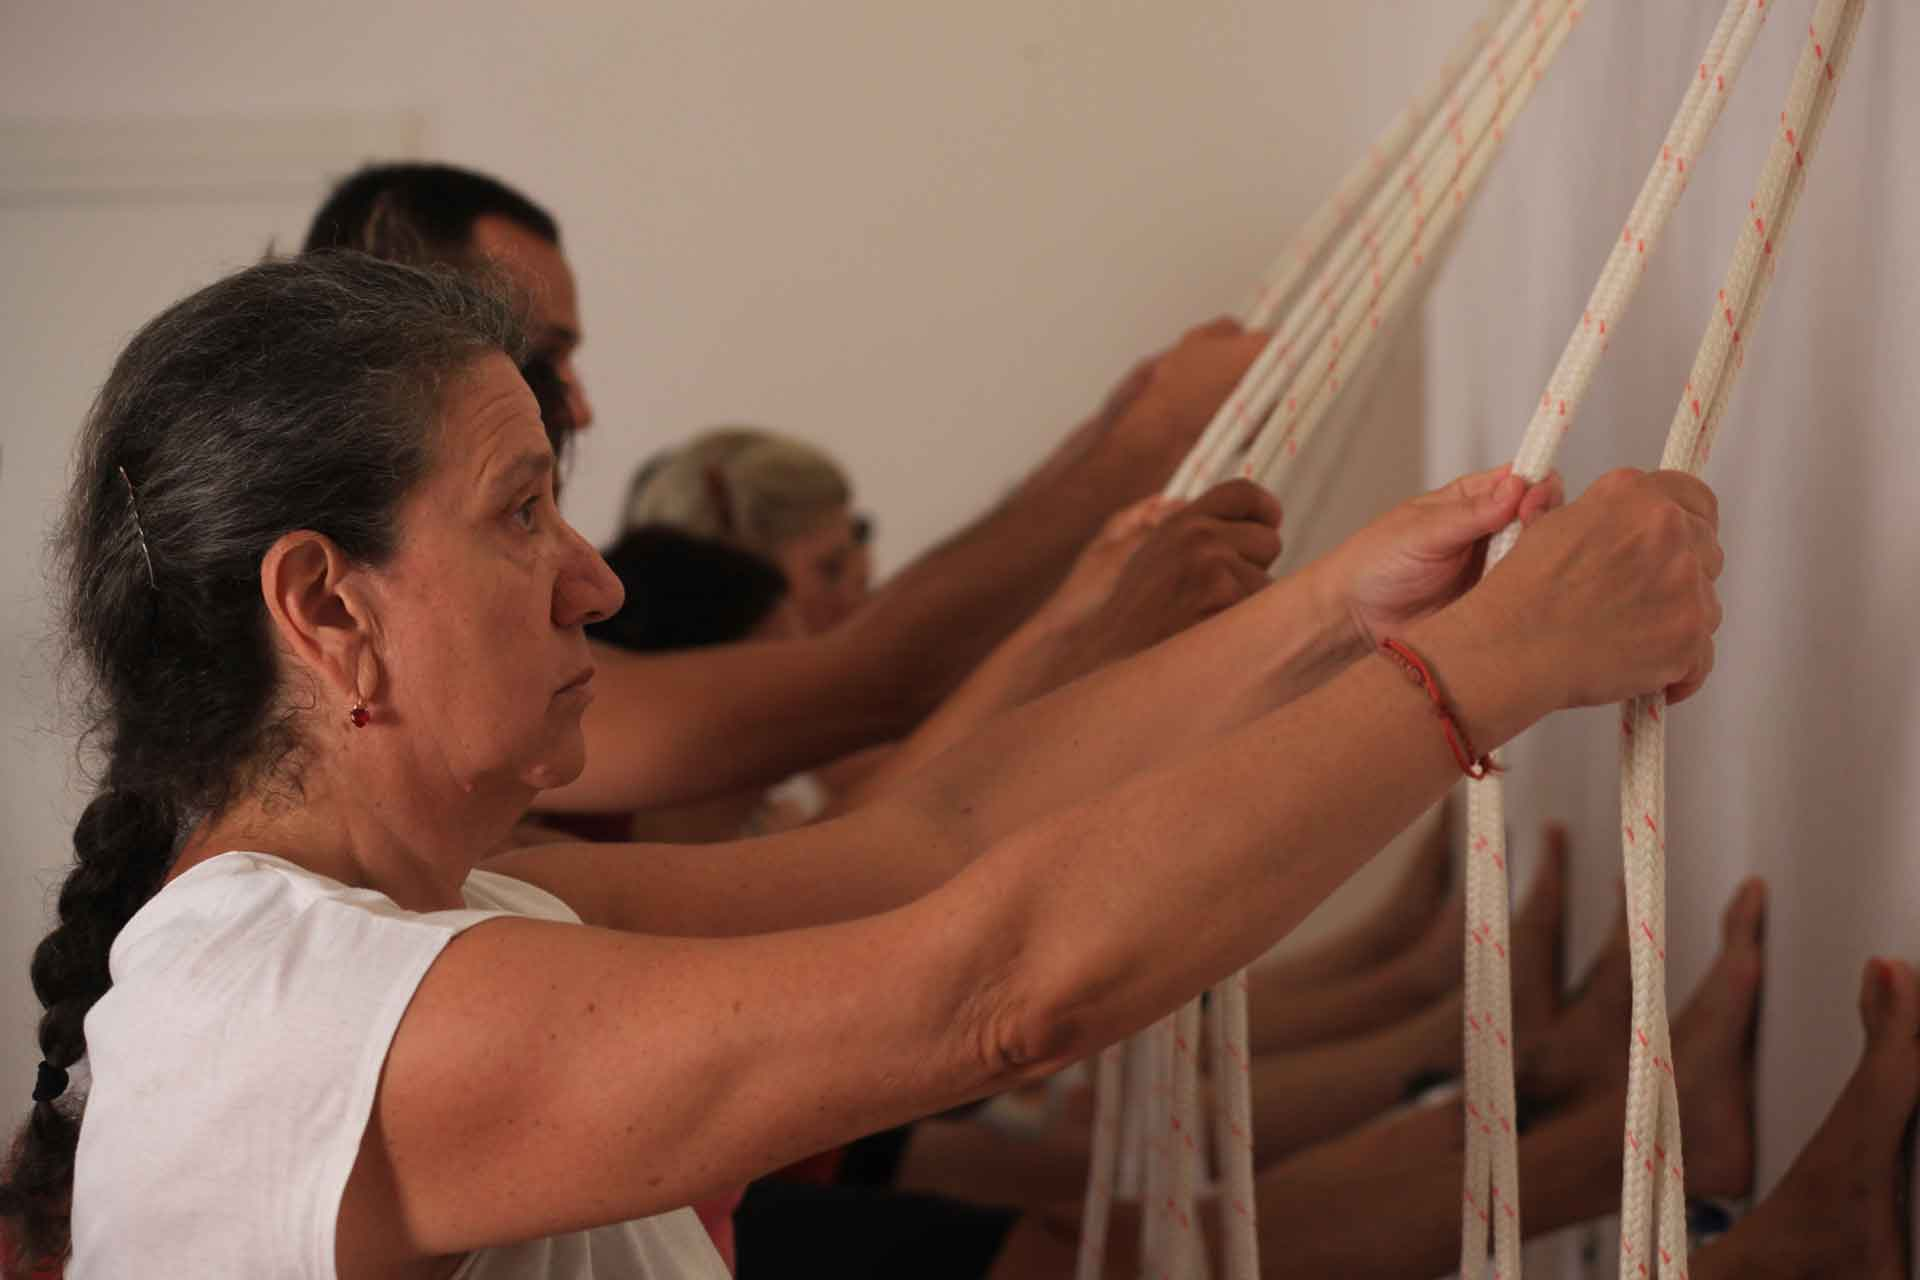 Postural yoga course in our yoga school in Genoa